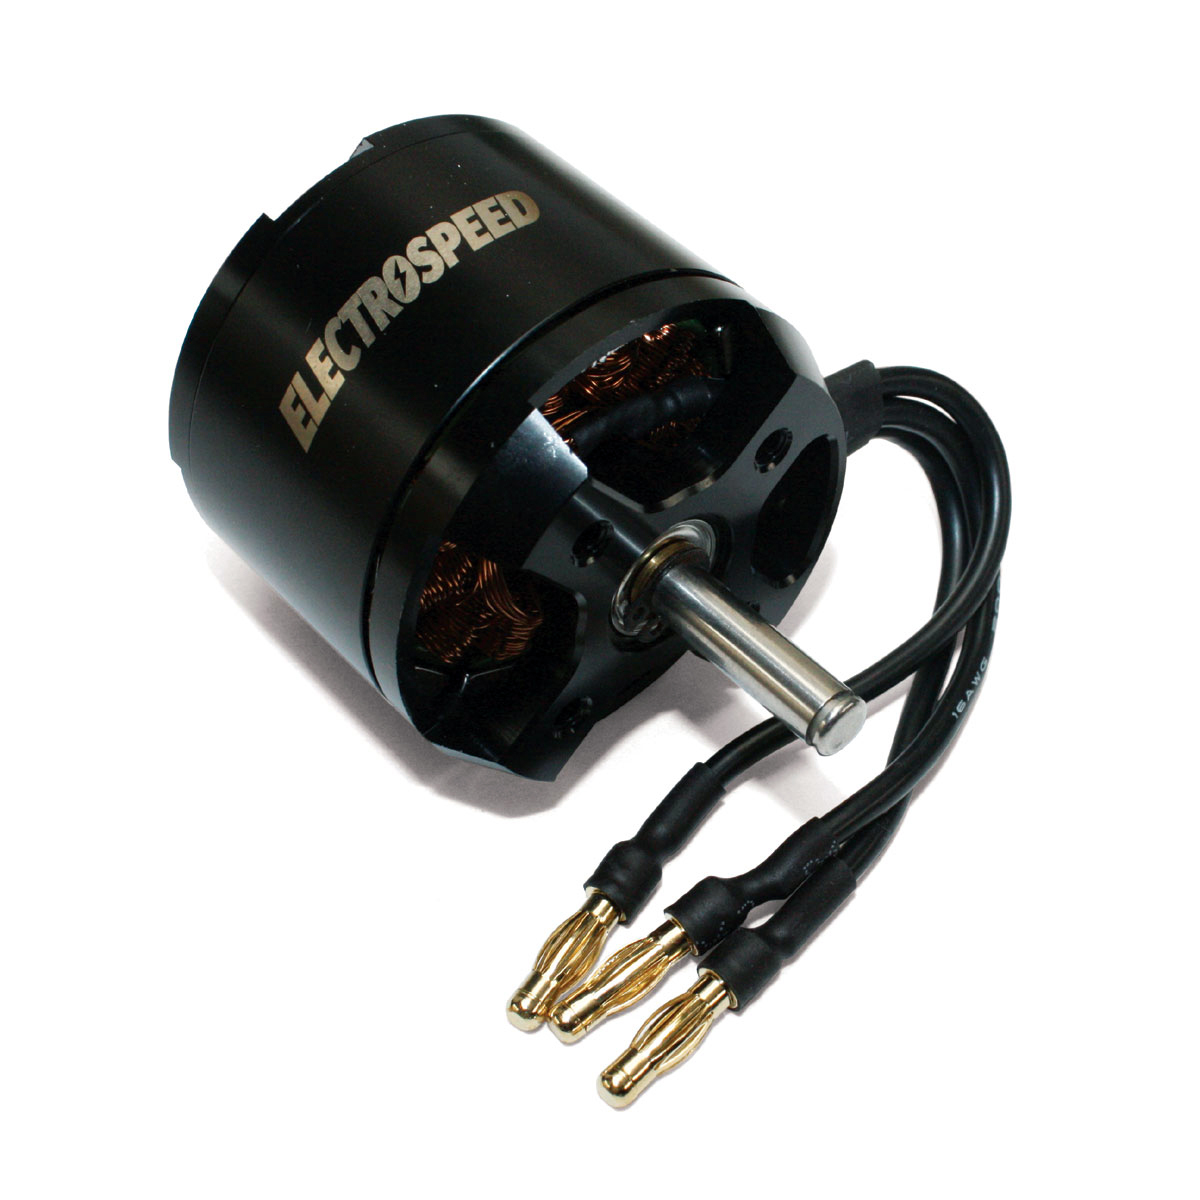 Electrospeed 5055/06 580KV Brushless Motor - Click Image to Close